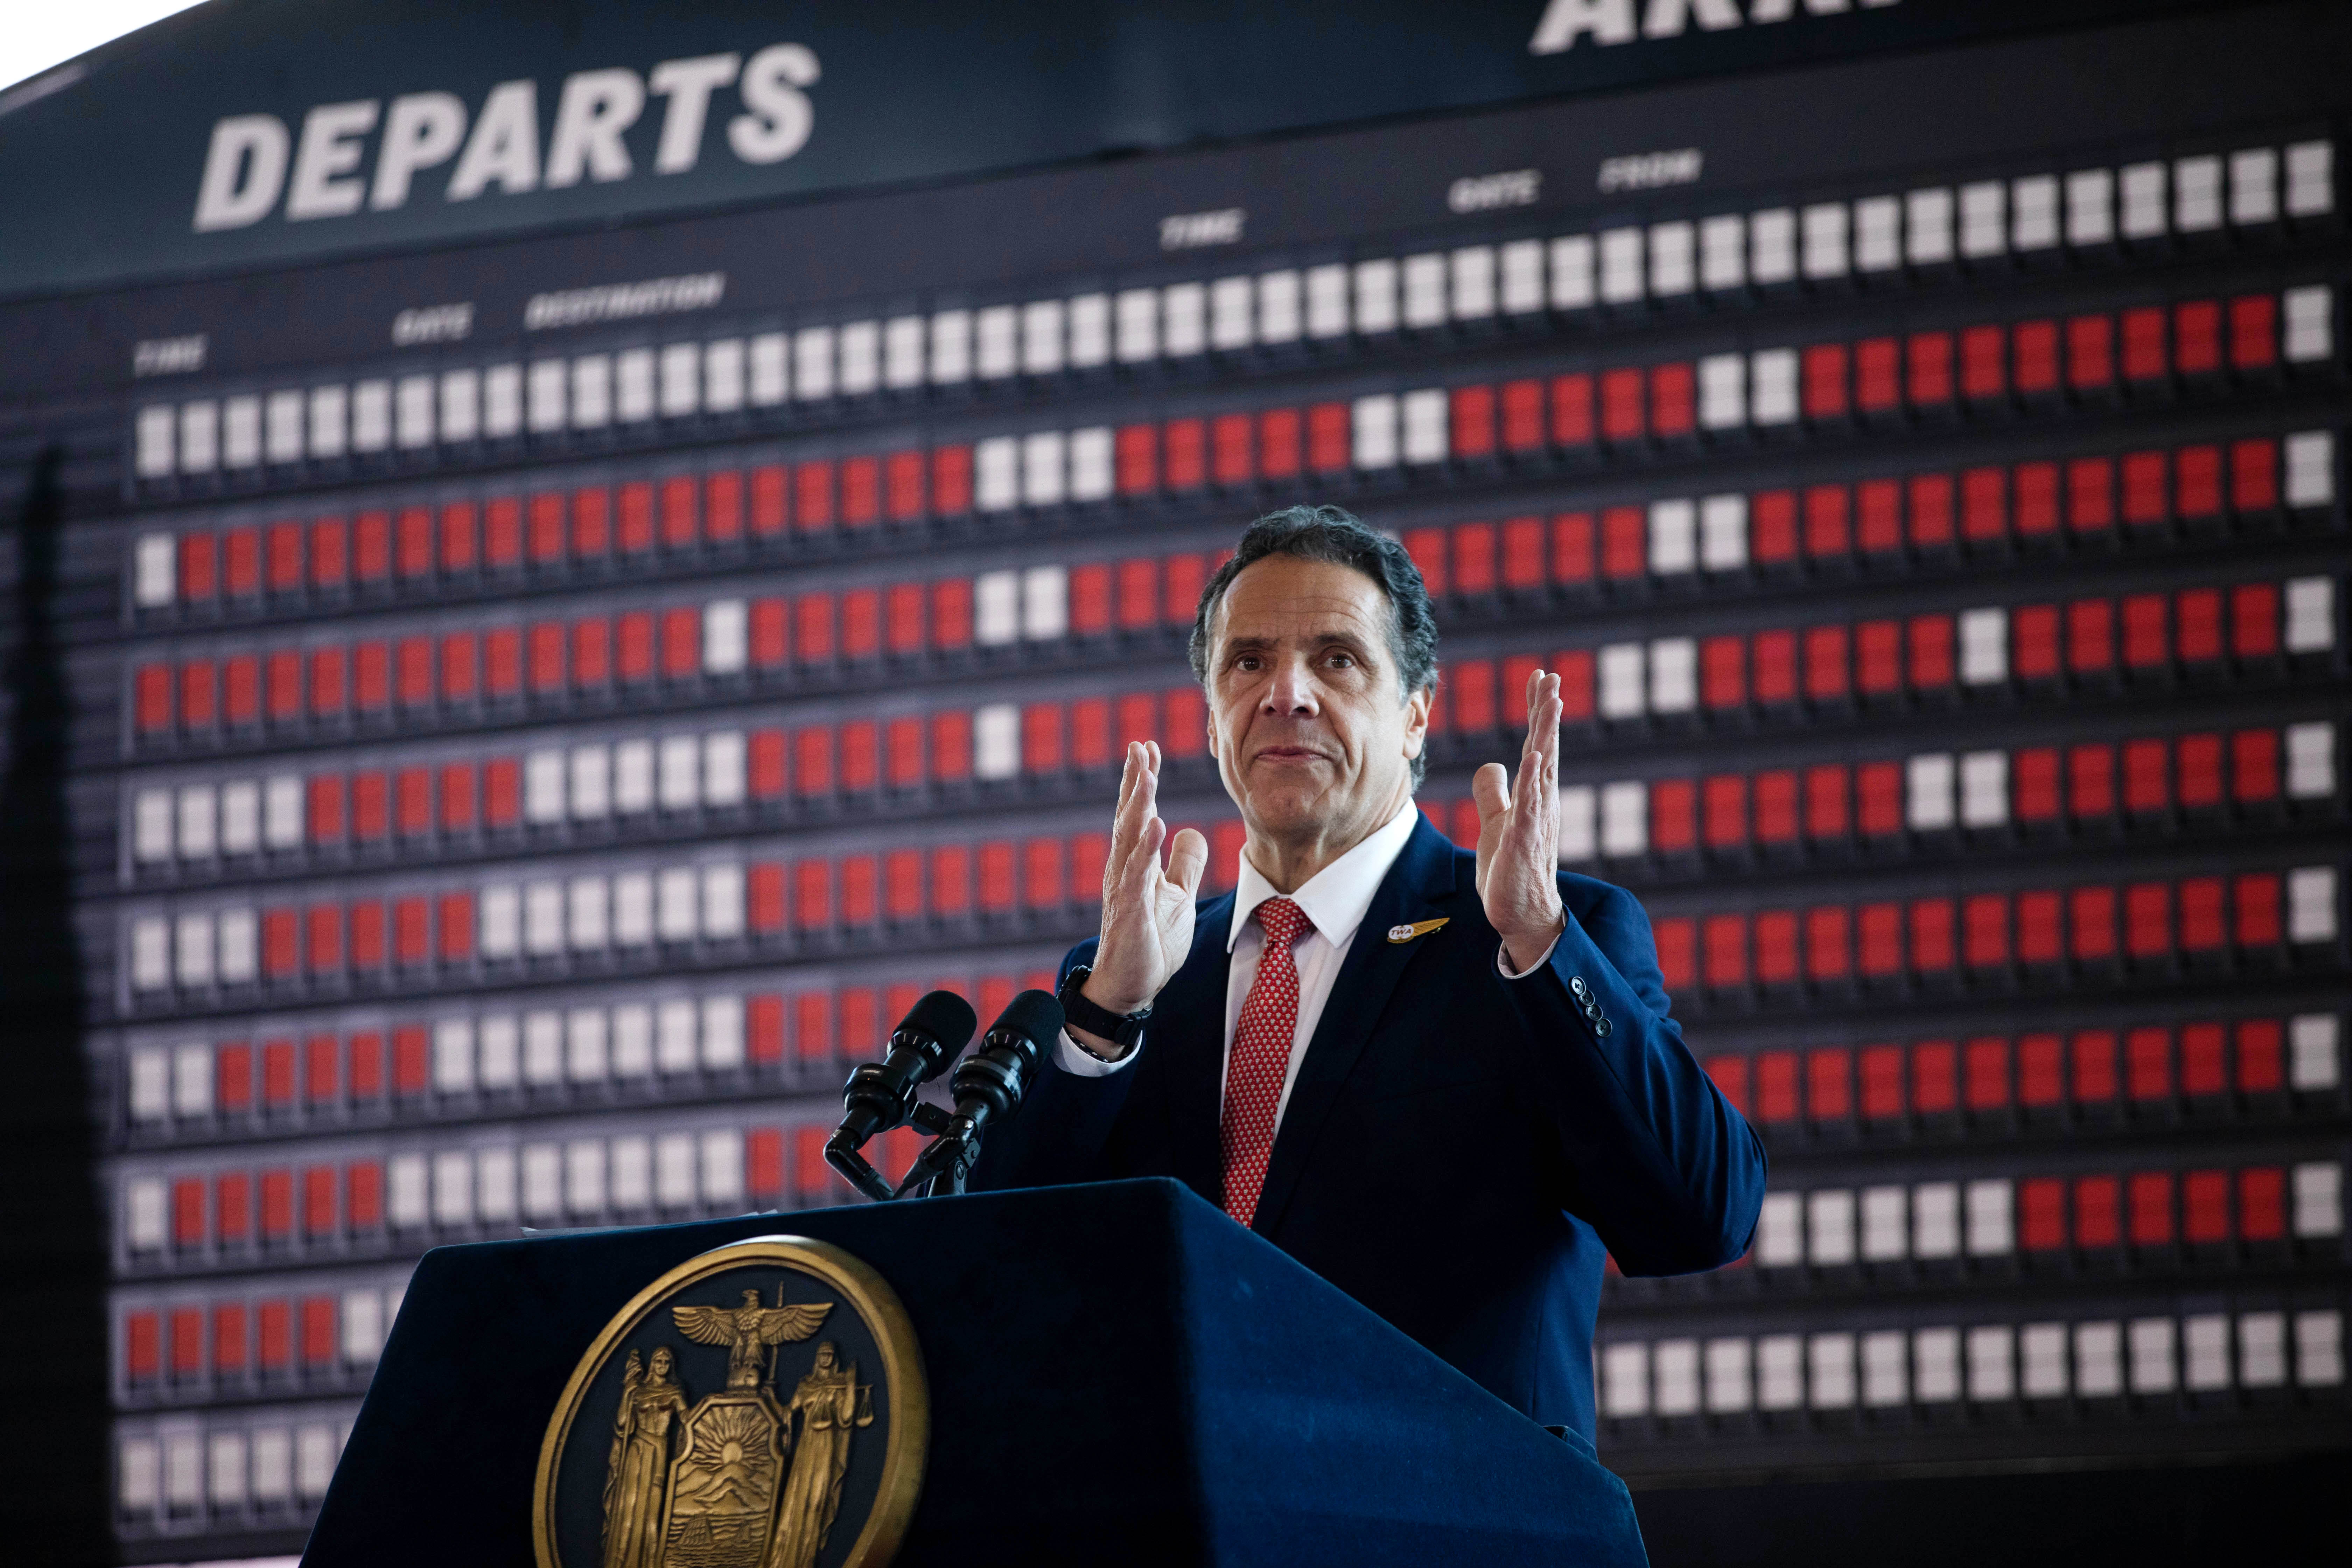 New York Gov. Andrew Cuomo (D) speaks in the new TWA Hotel at JFK Airport on May 15, 2019.